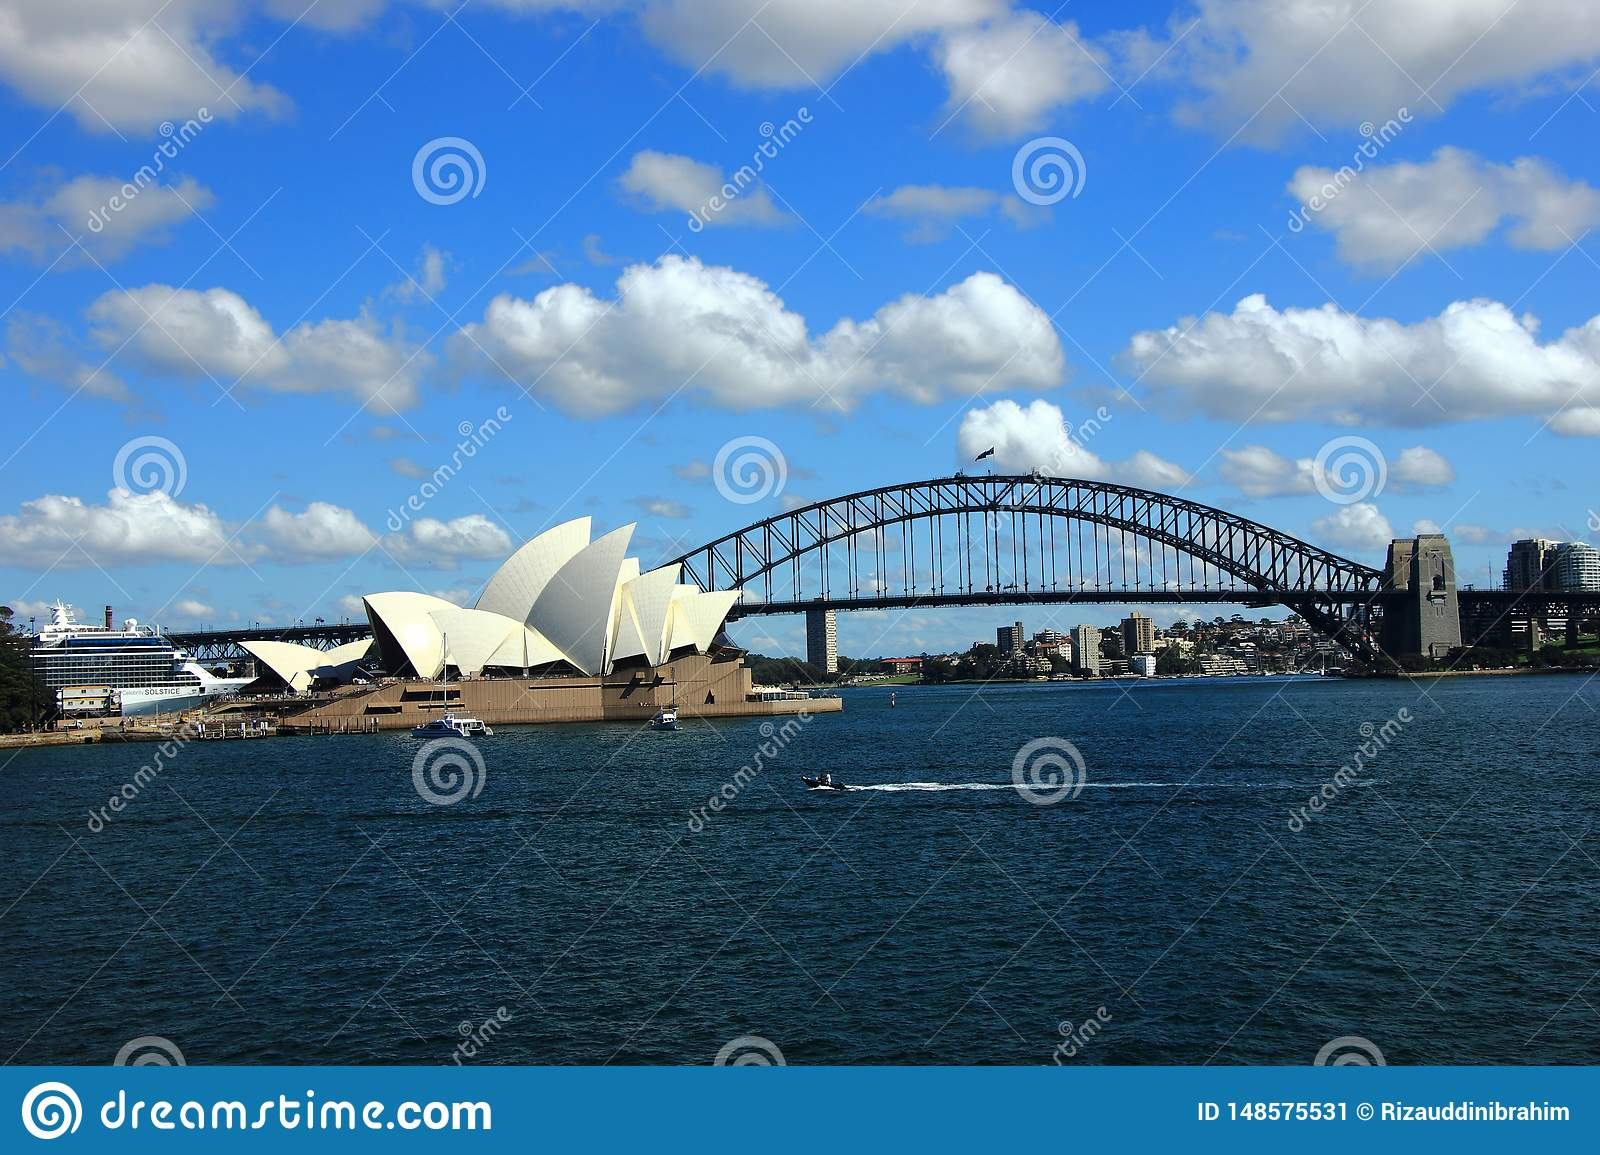 The View of Sydney Harbor